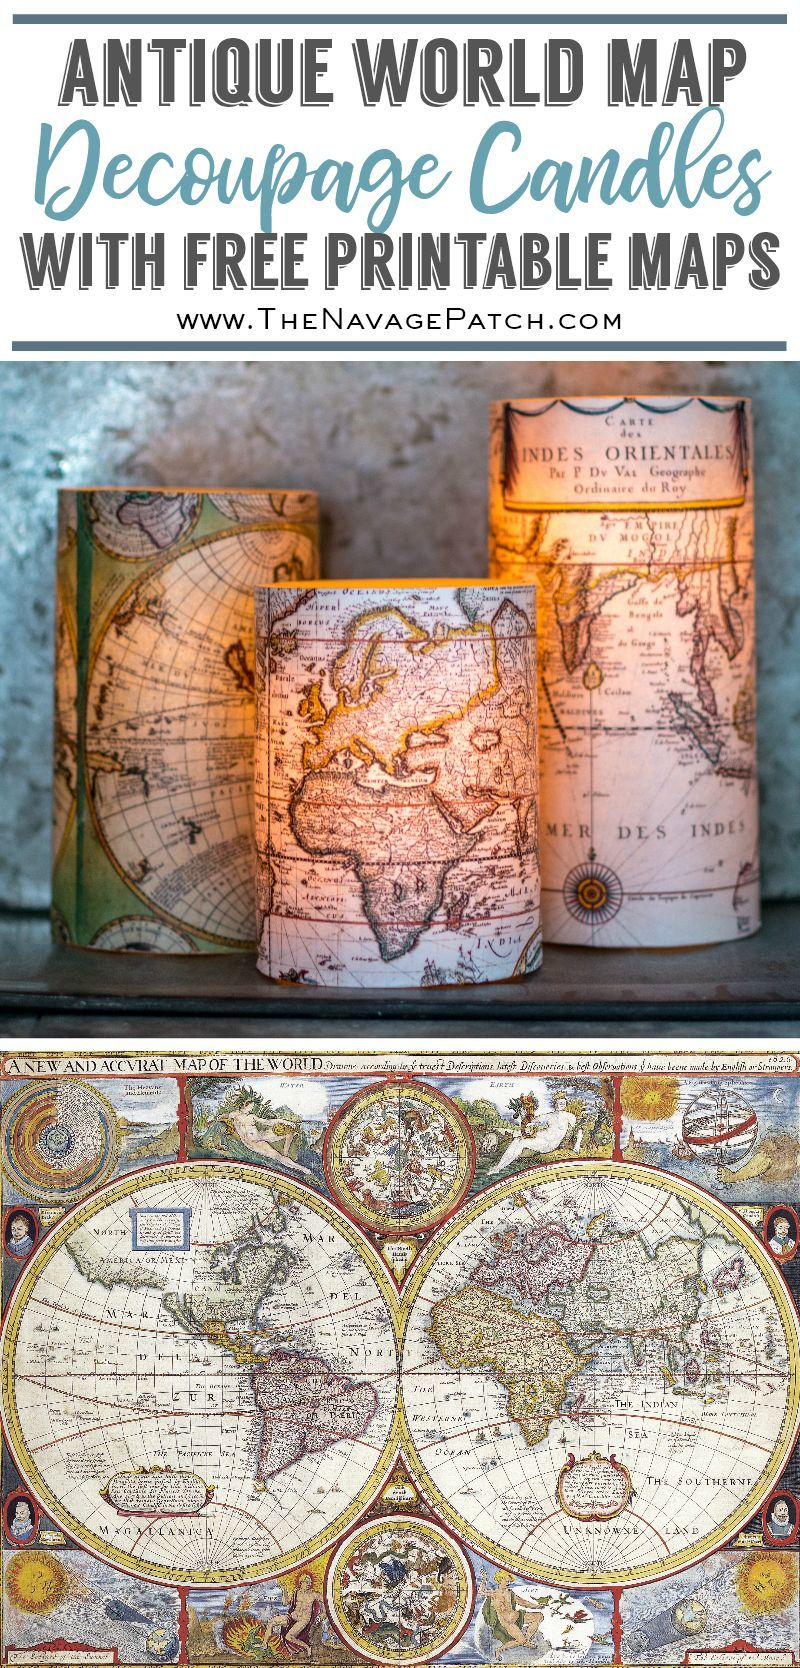 Decoupage Candles with Antique World Maps (FREE Printables!) | DIY ...